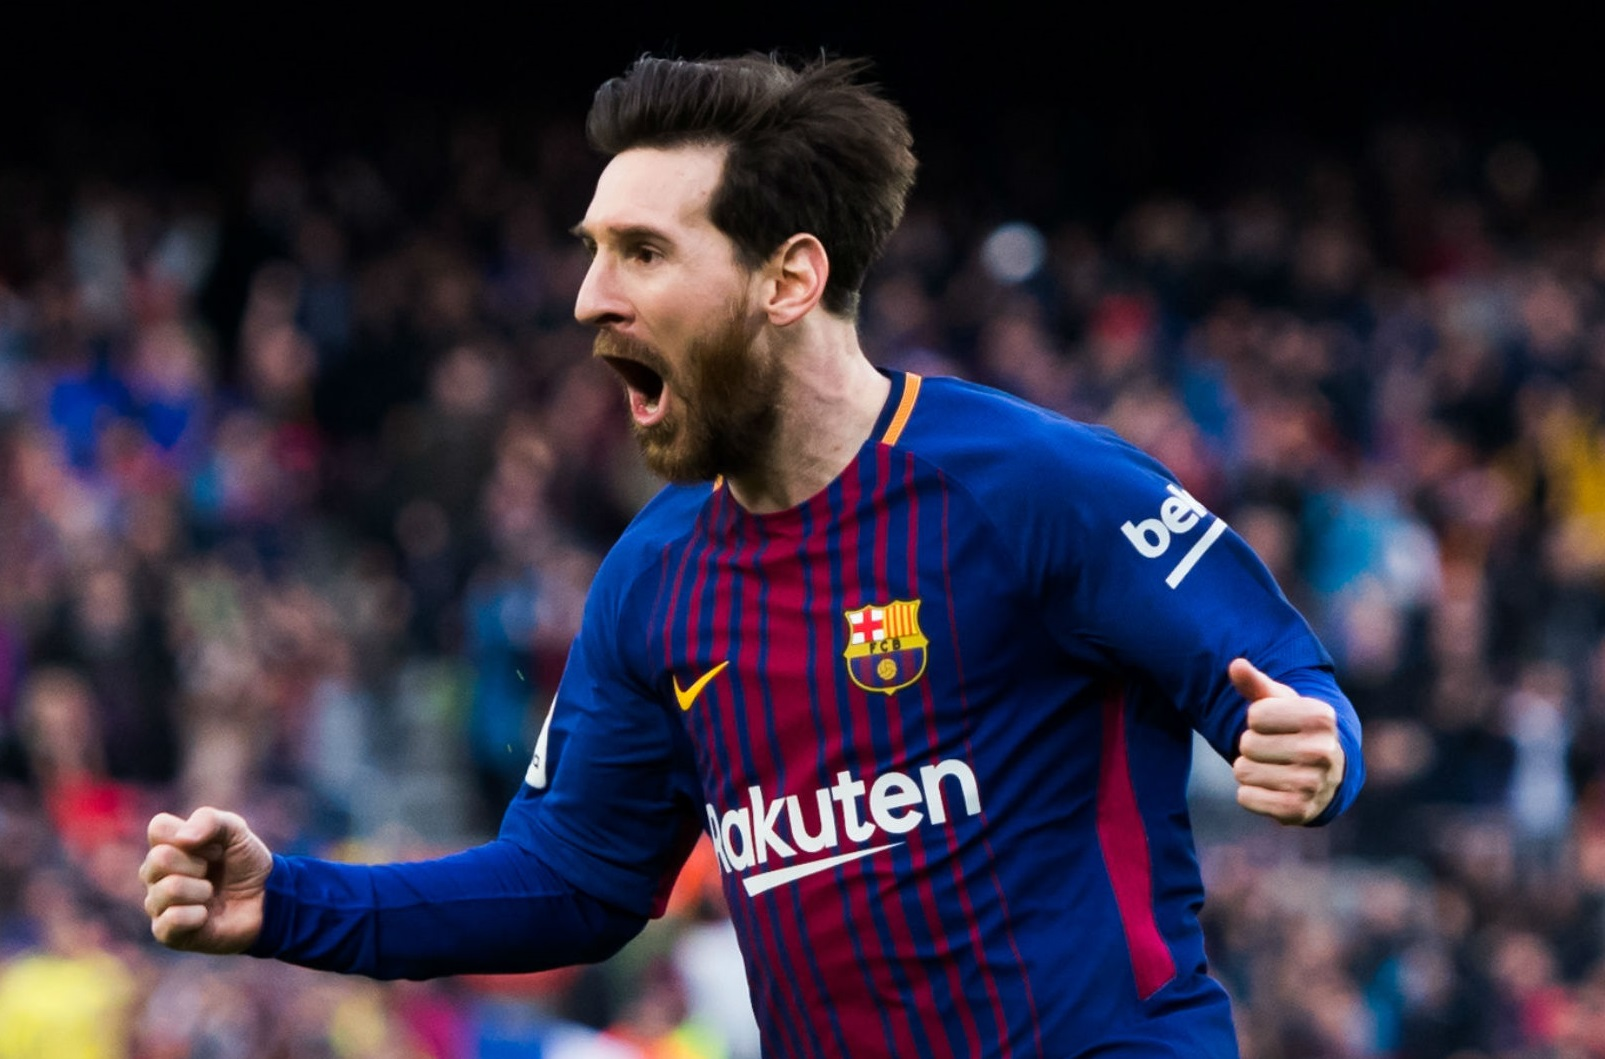 BREAKING: Messi trains with Barcelona after transfer row